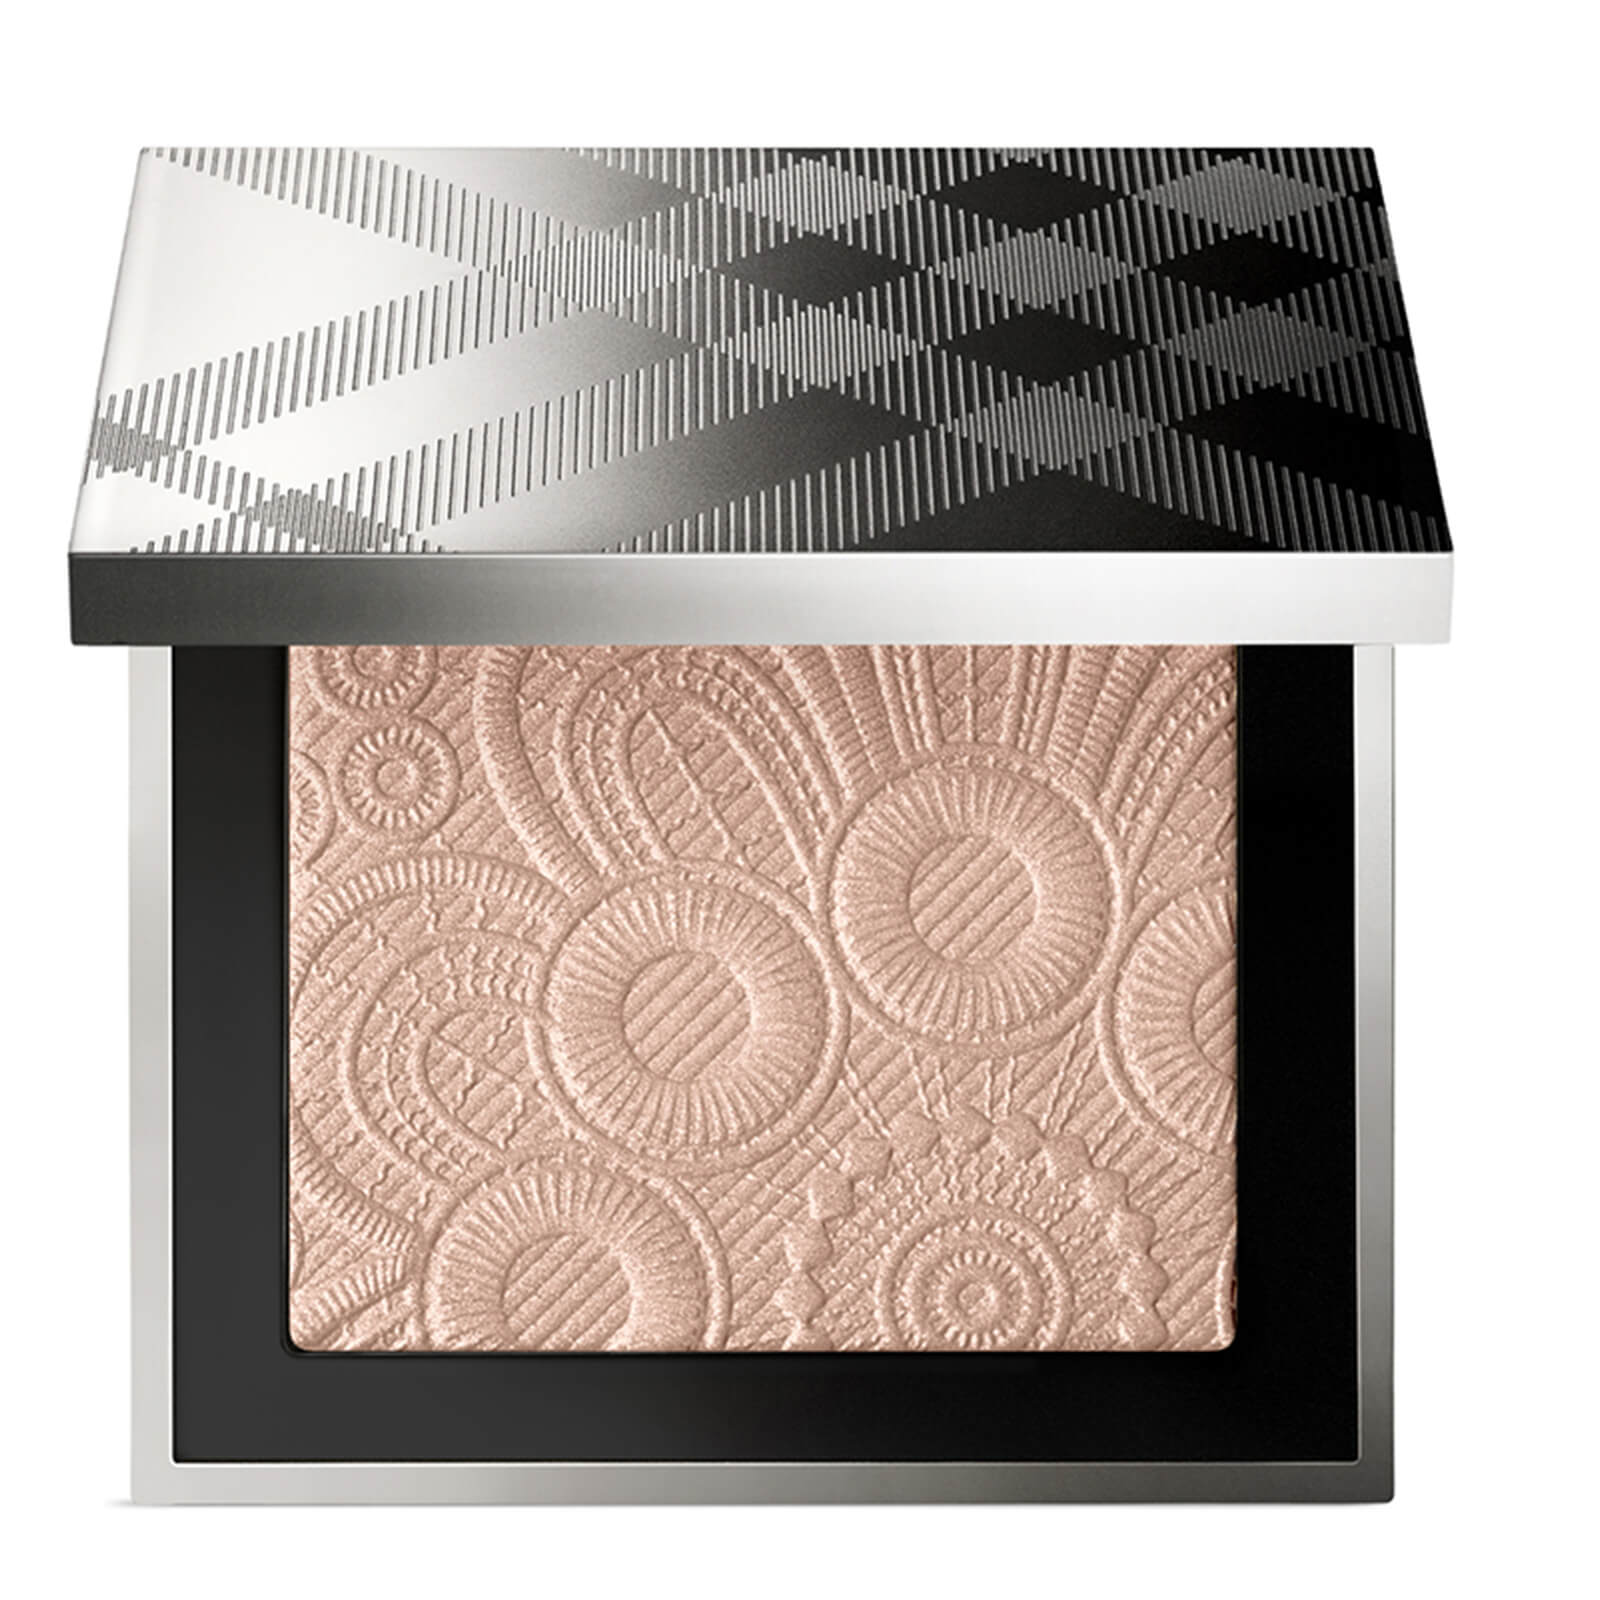 Burberry Face Fresh Glow Highlighter - Rose Gold 04